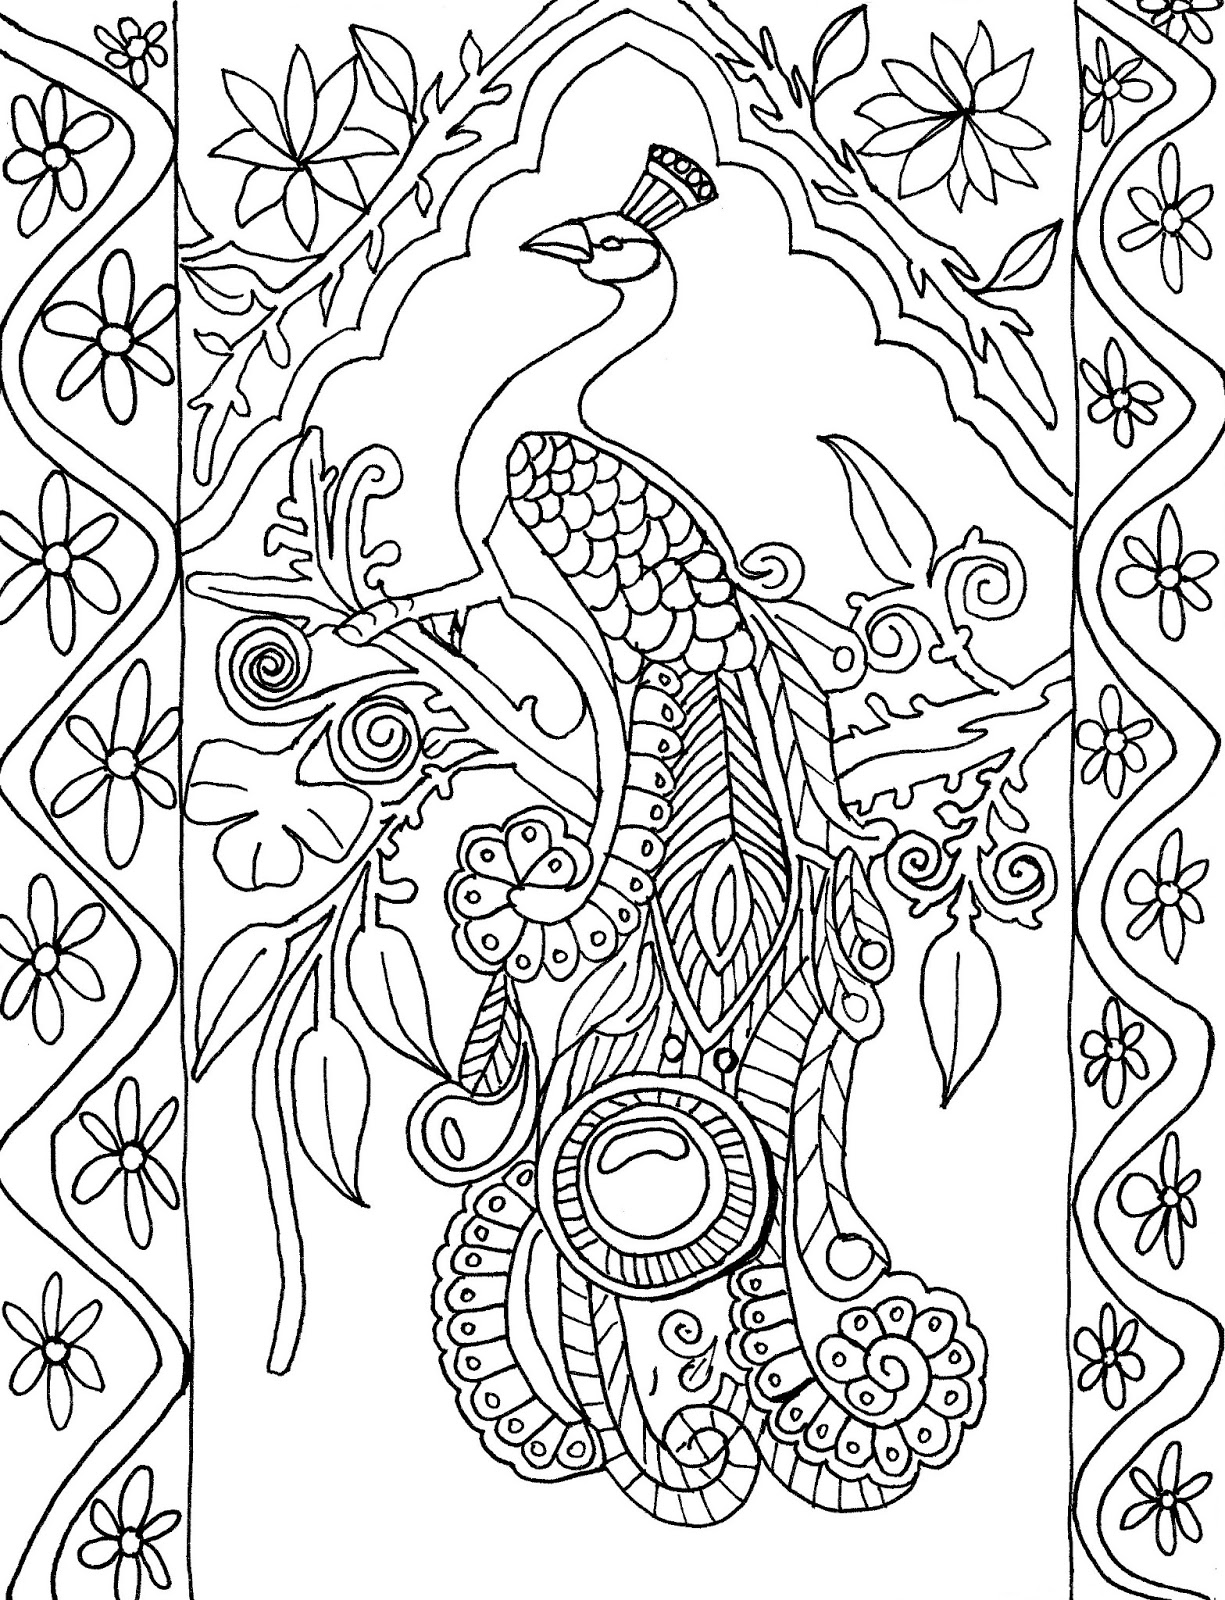 peacock pictures to color peacock coloring pages to peacock color pictures